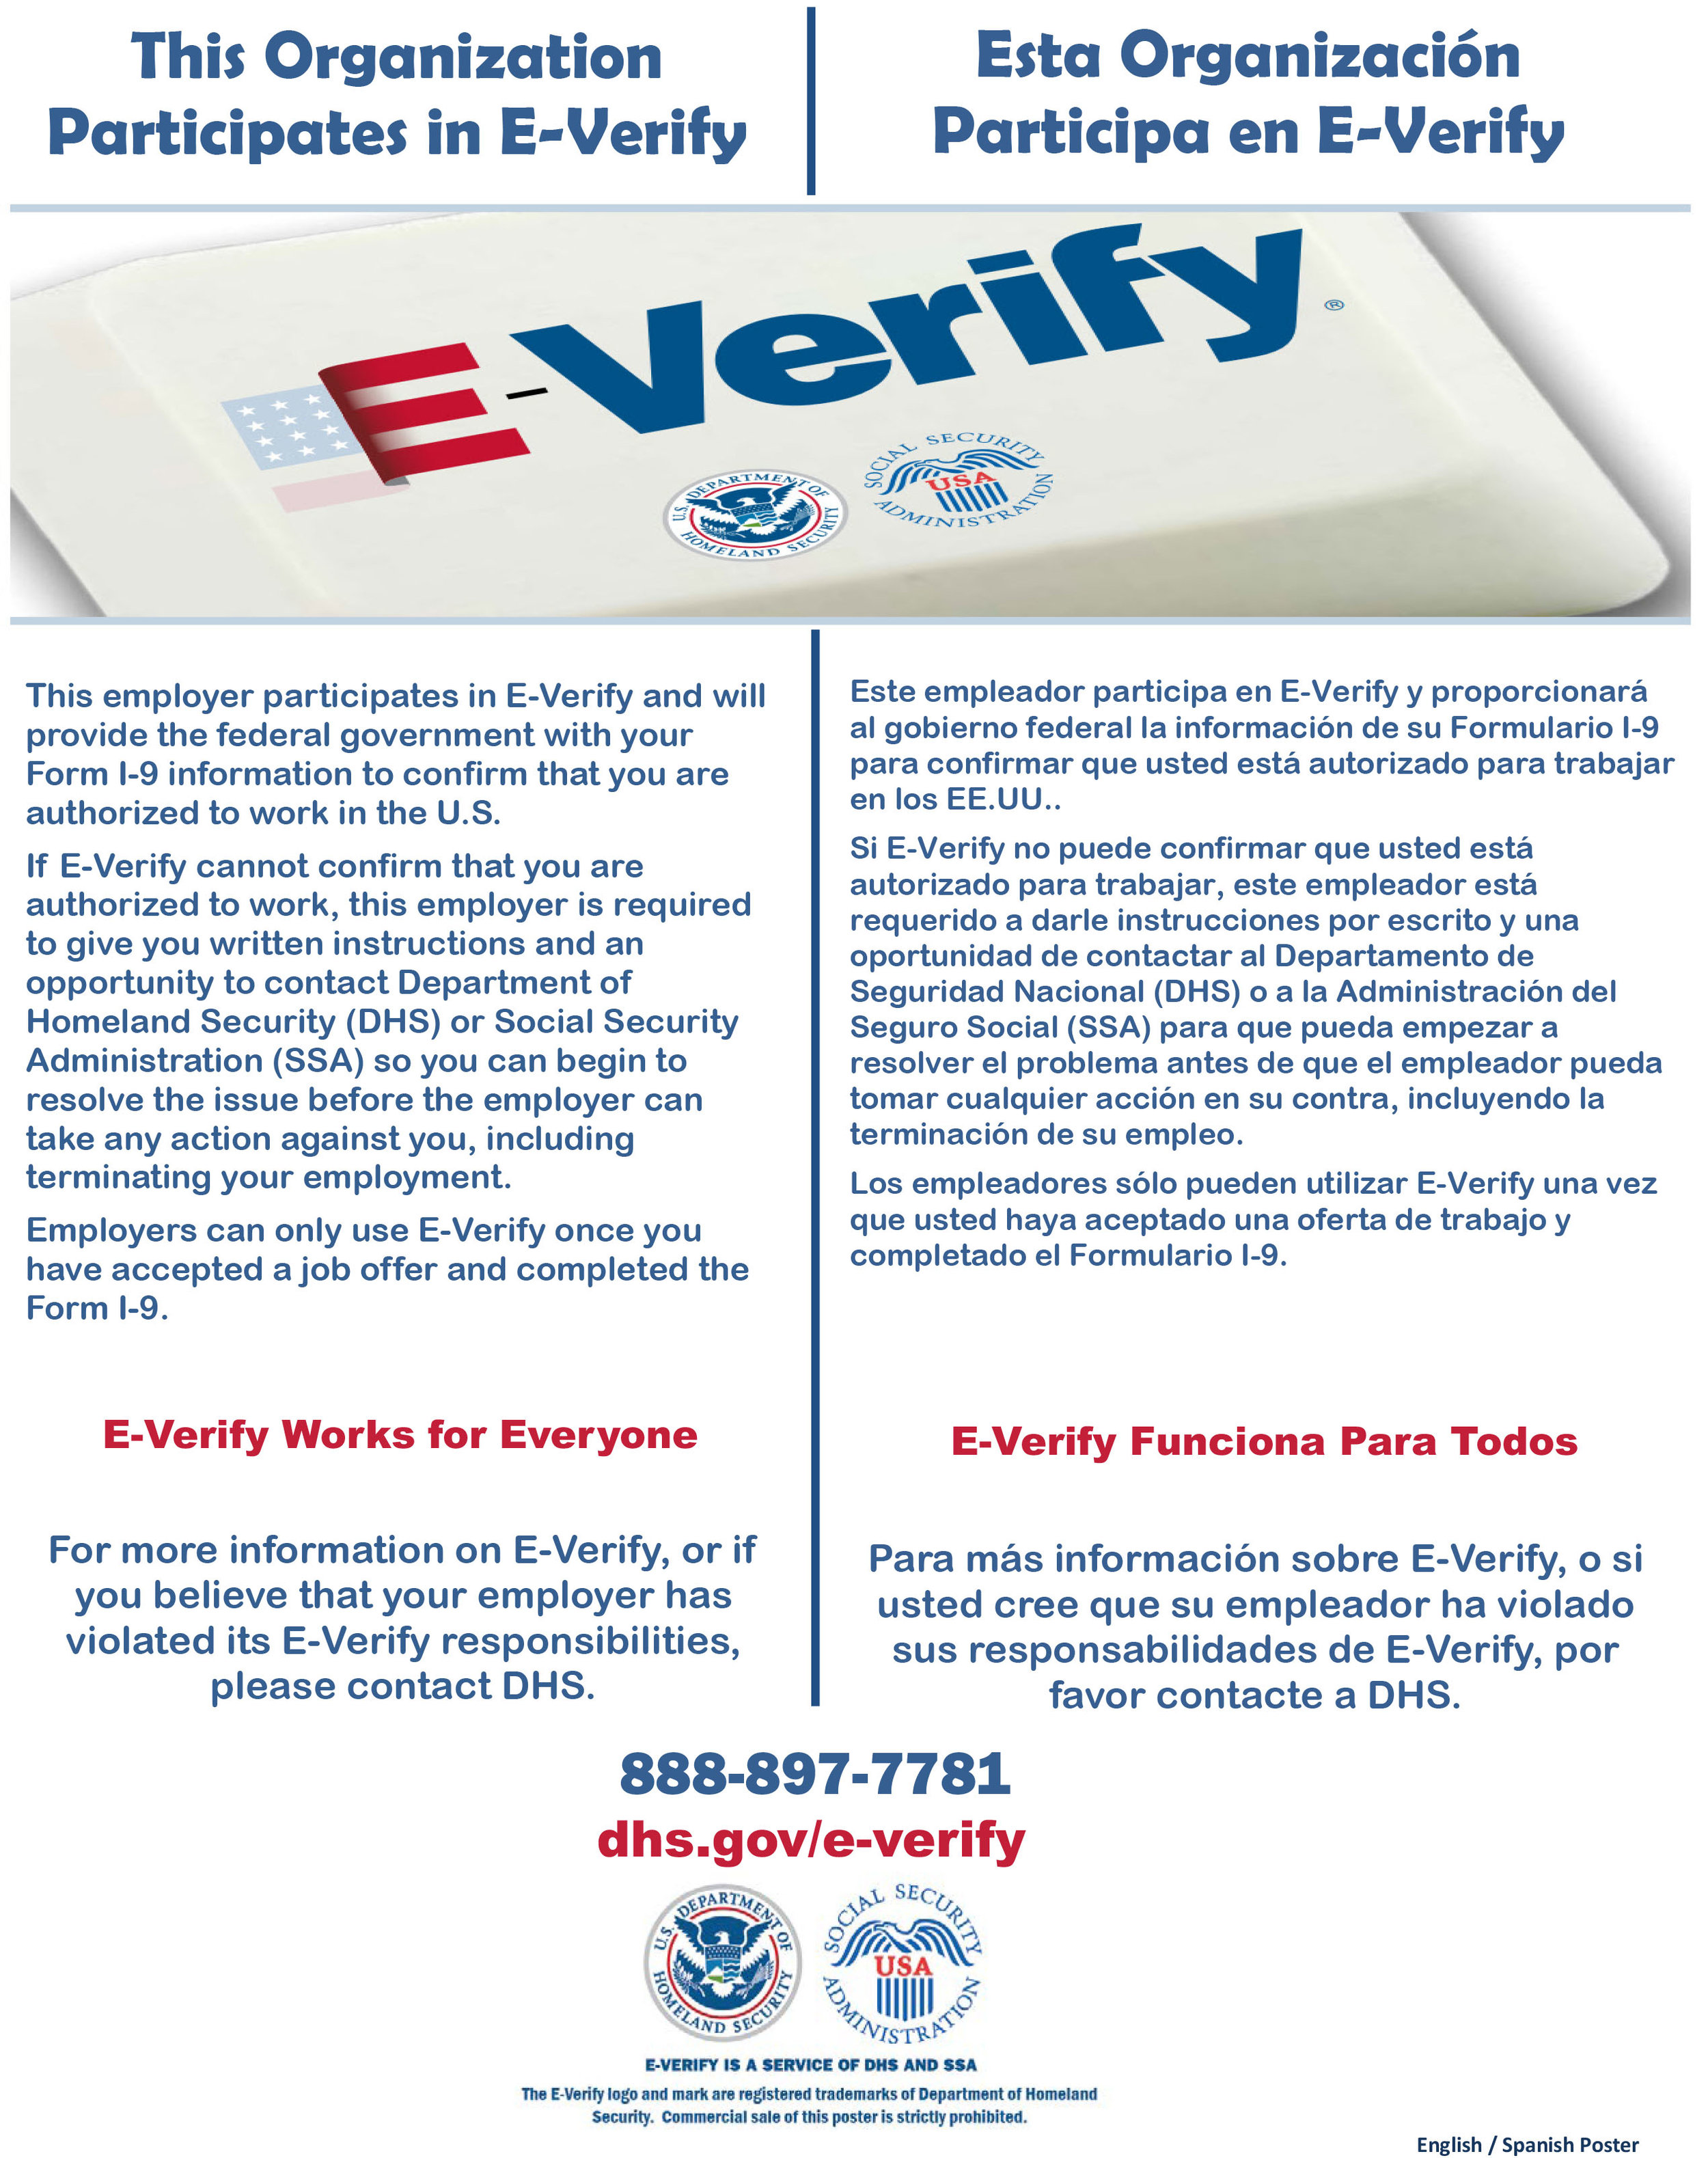 E-Verify Participation Poster English and Spanish